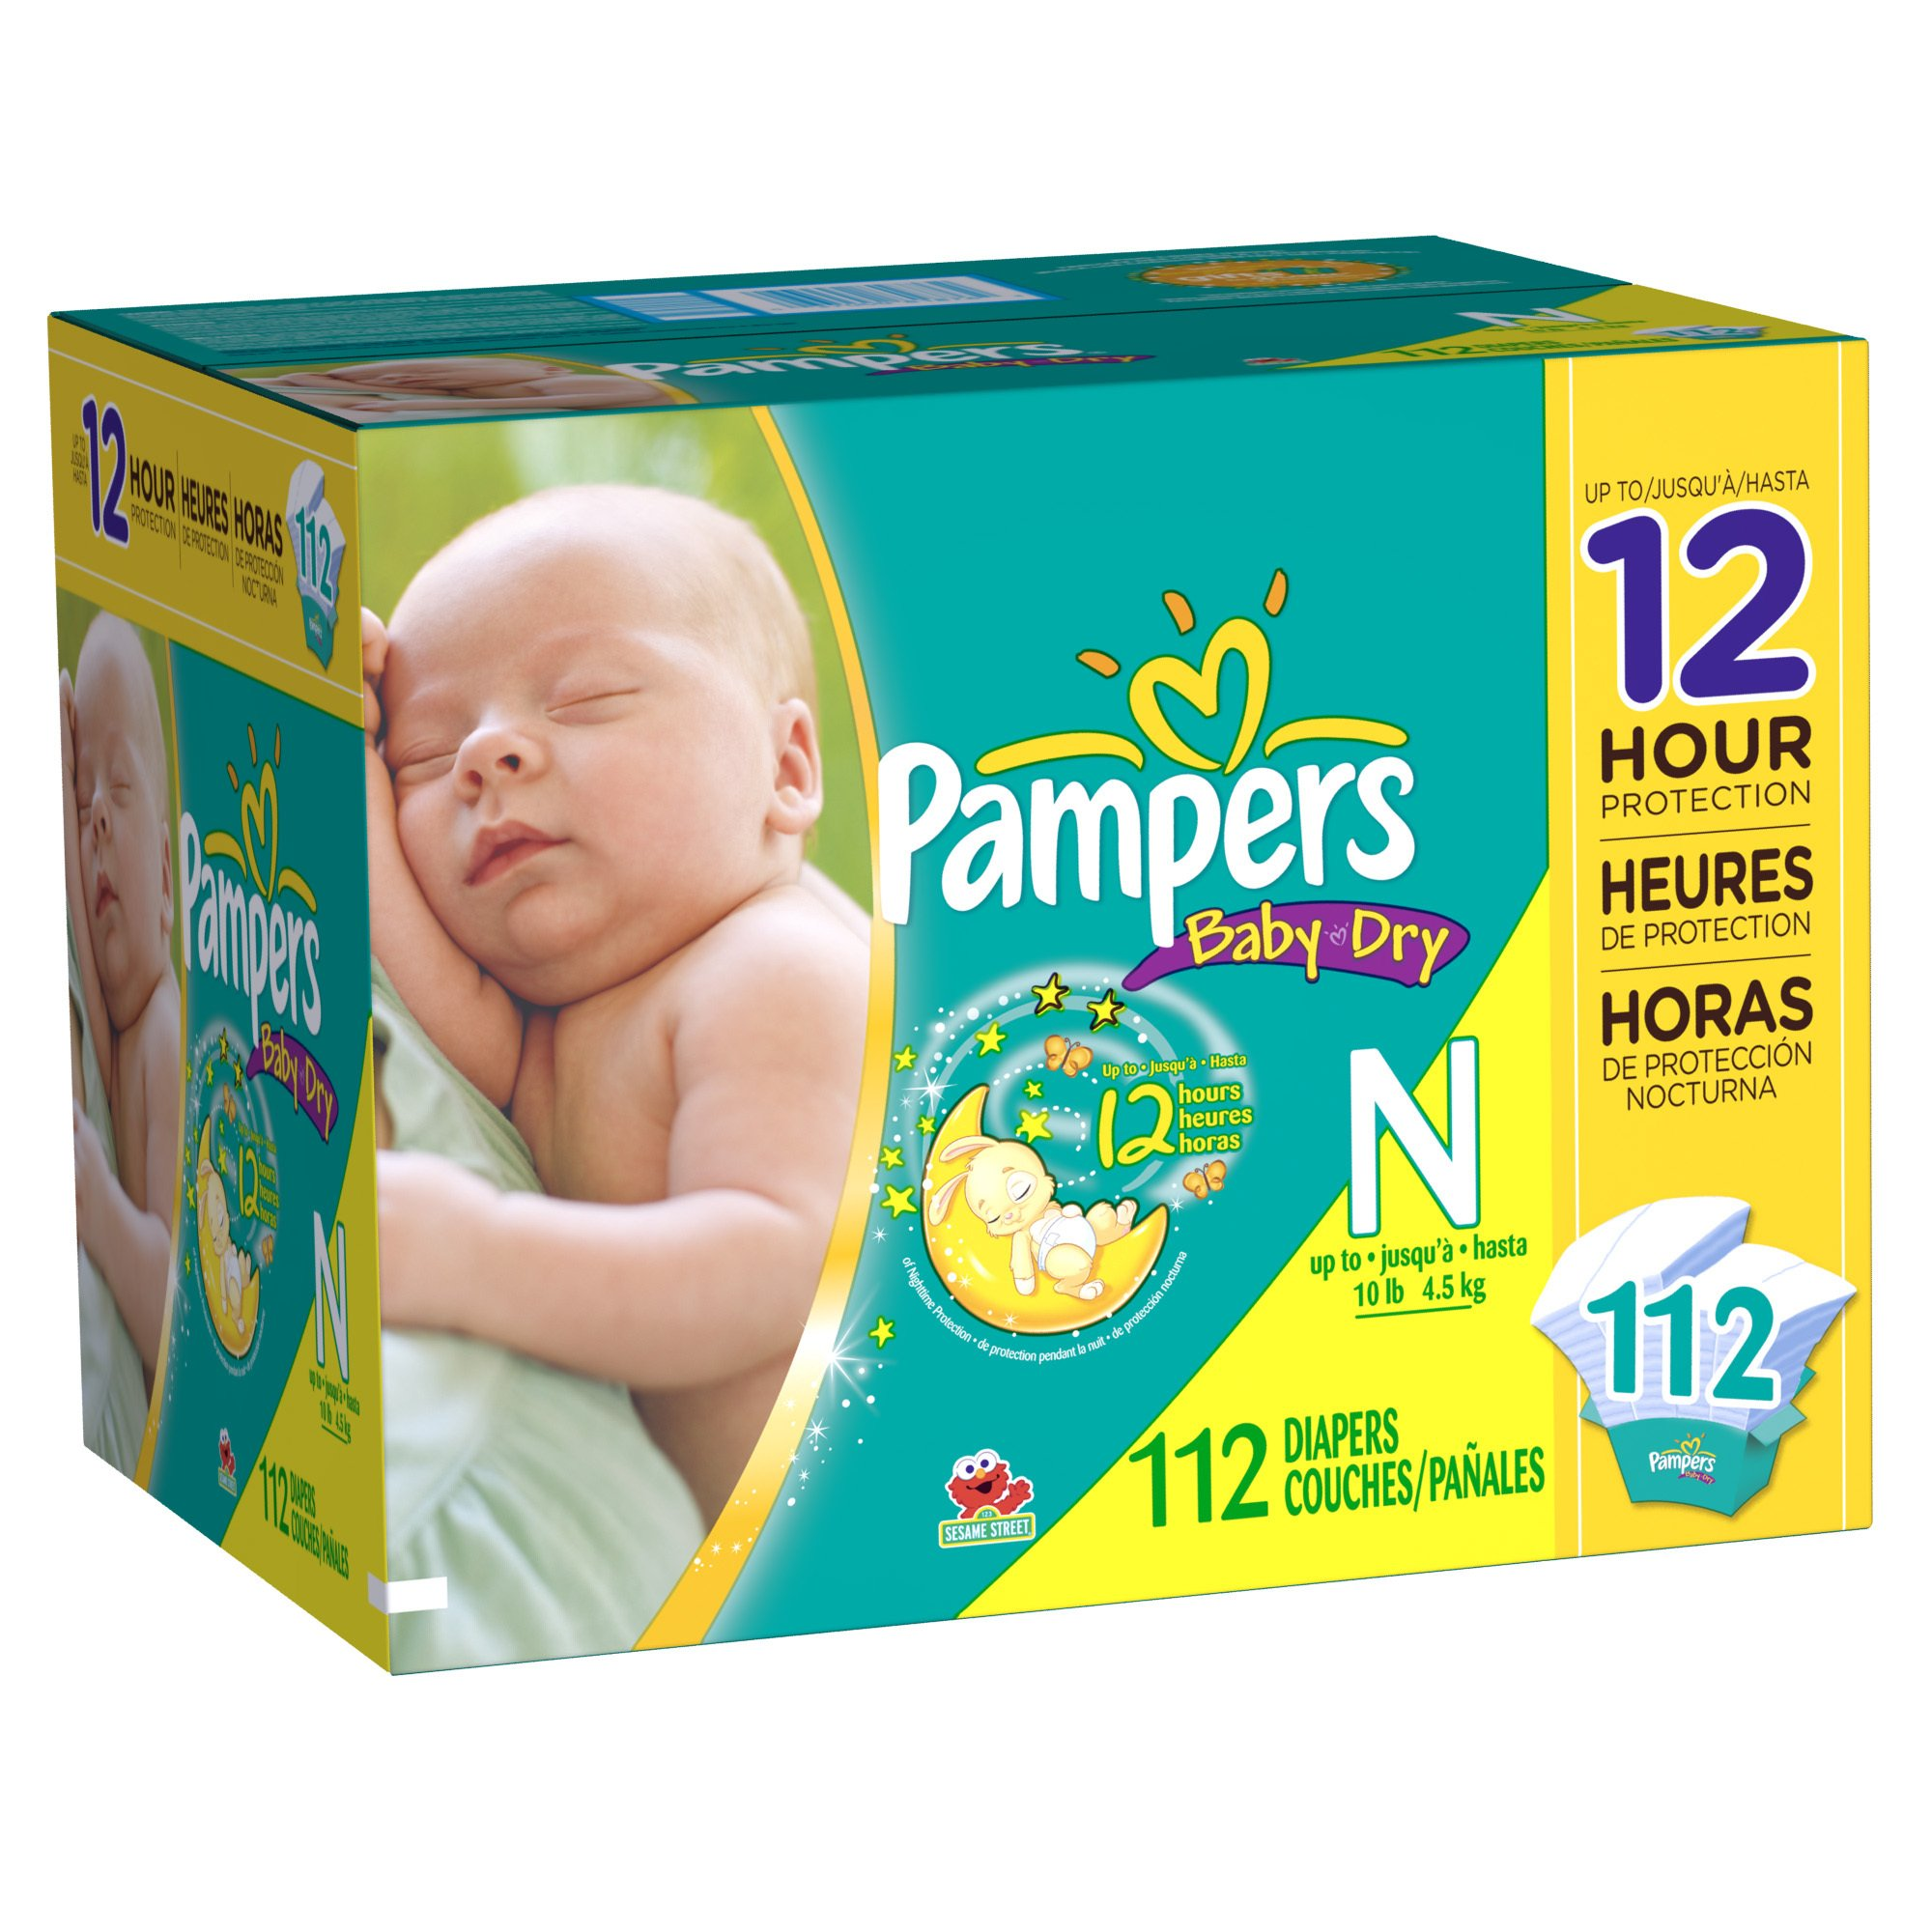 Pampers Baby Dry Diapers Super Pack, Newborn, 112 Count